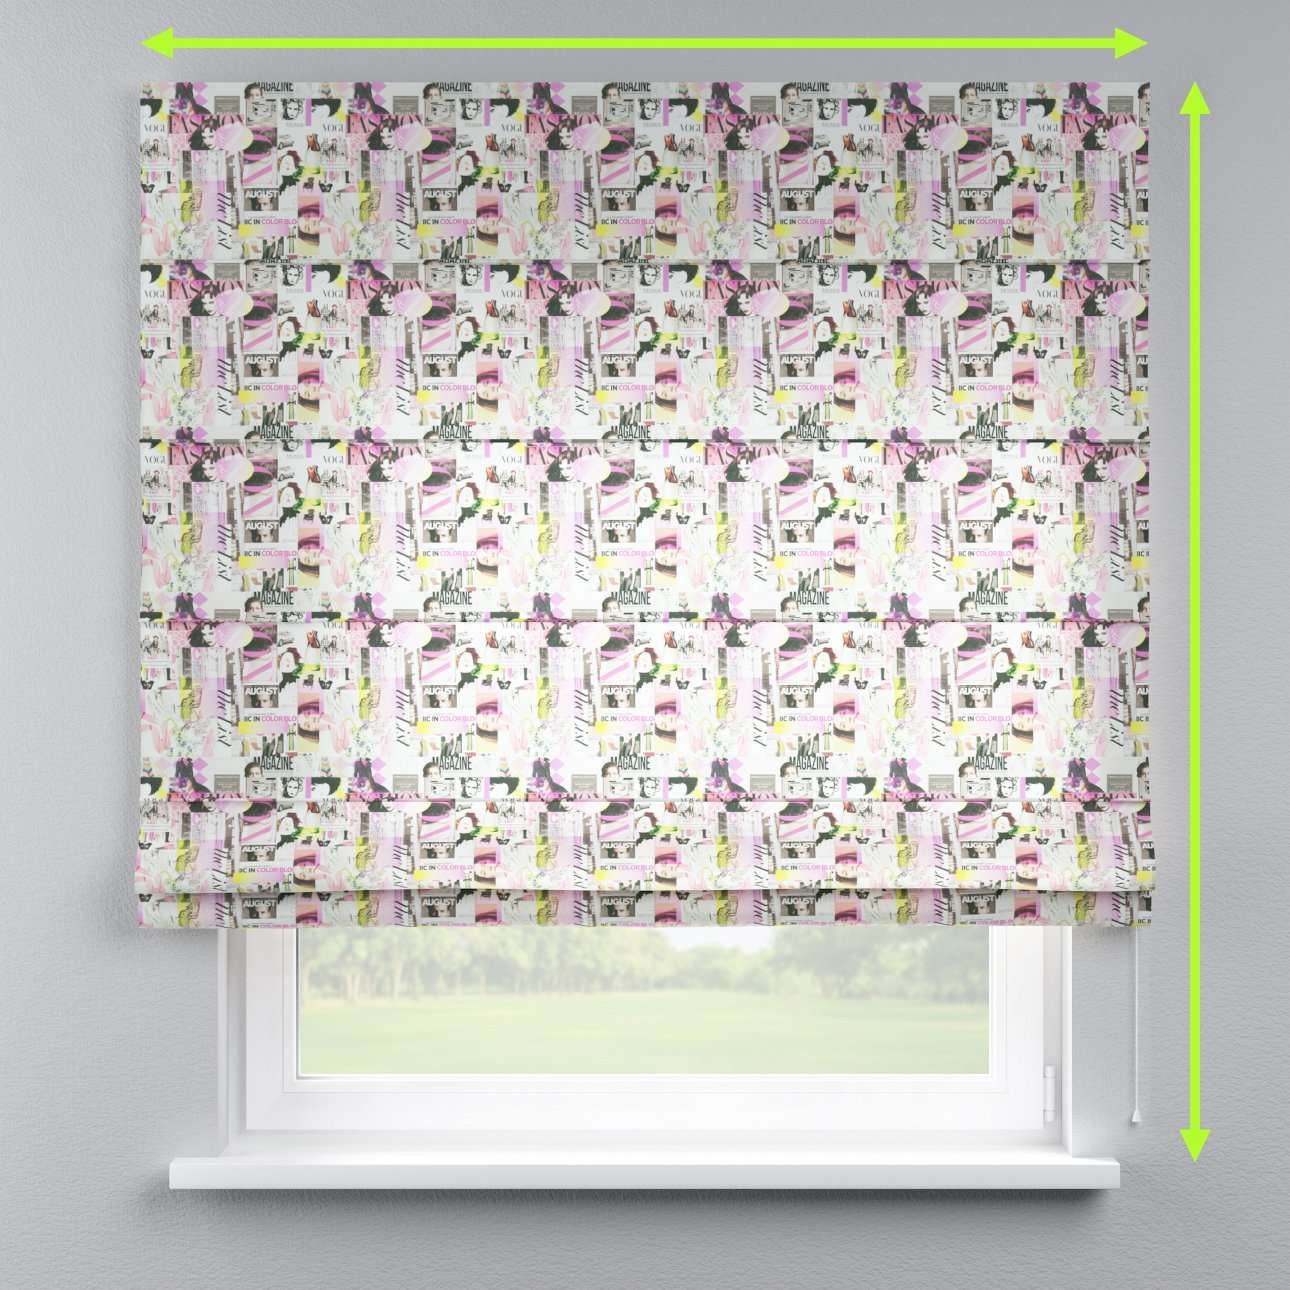 Capri roman blind in collection Freestyle, fabric: 135-15